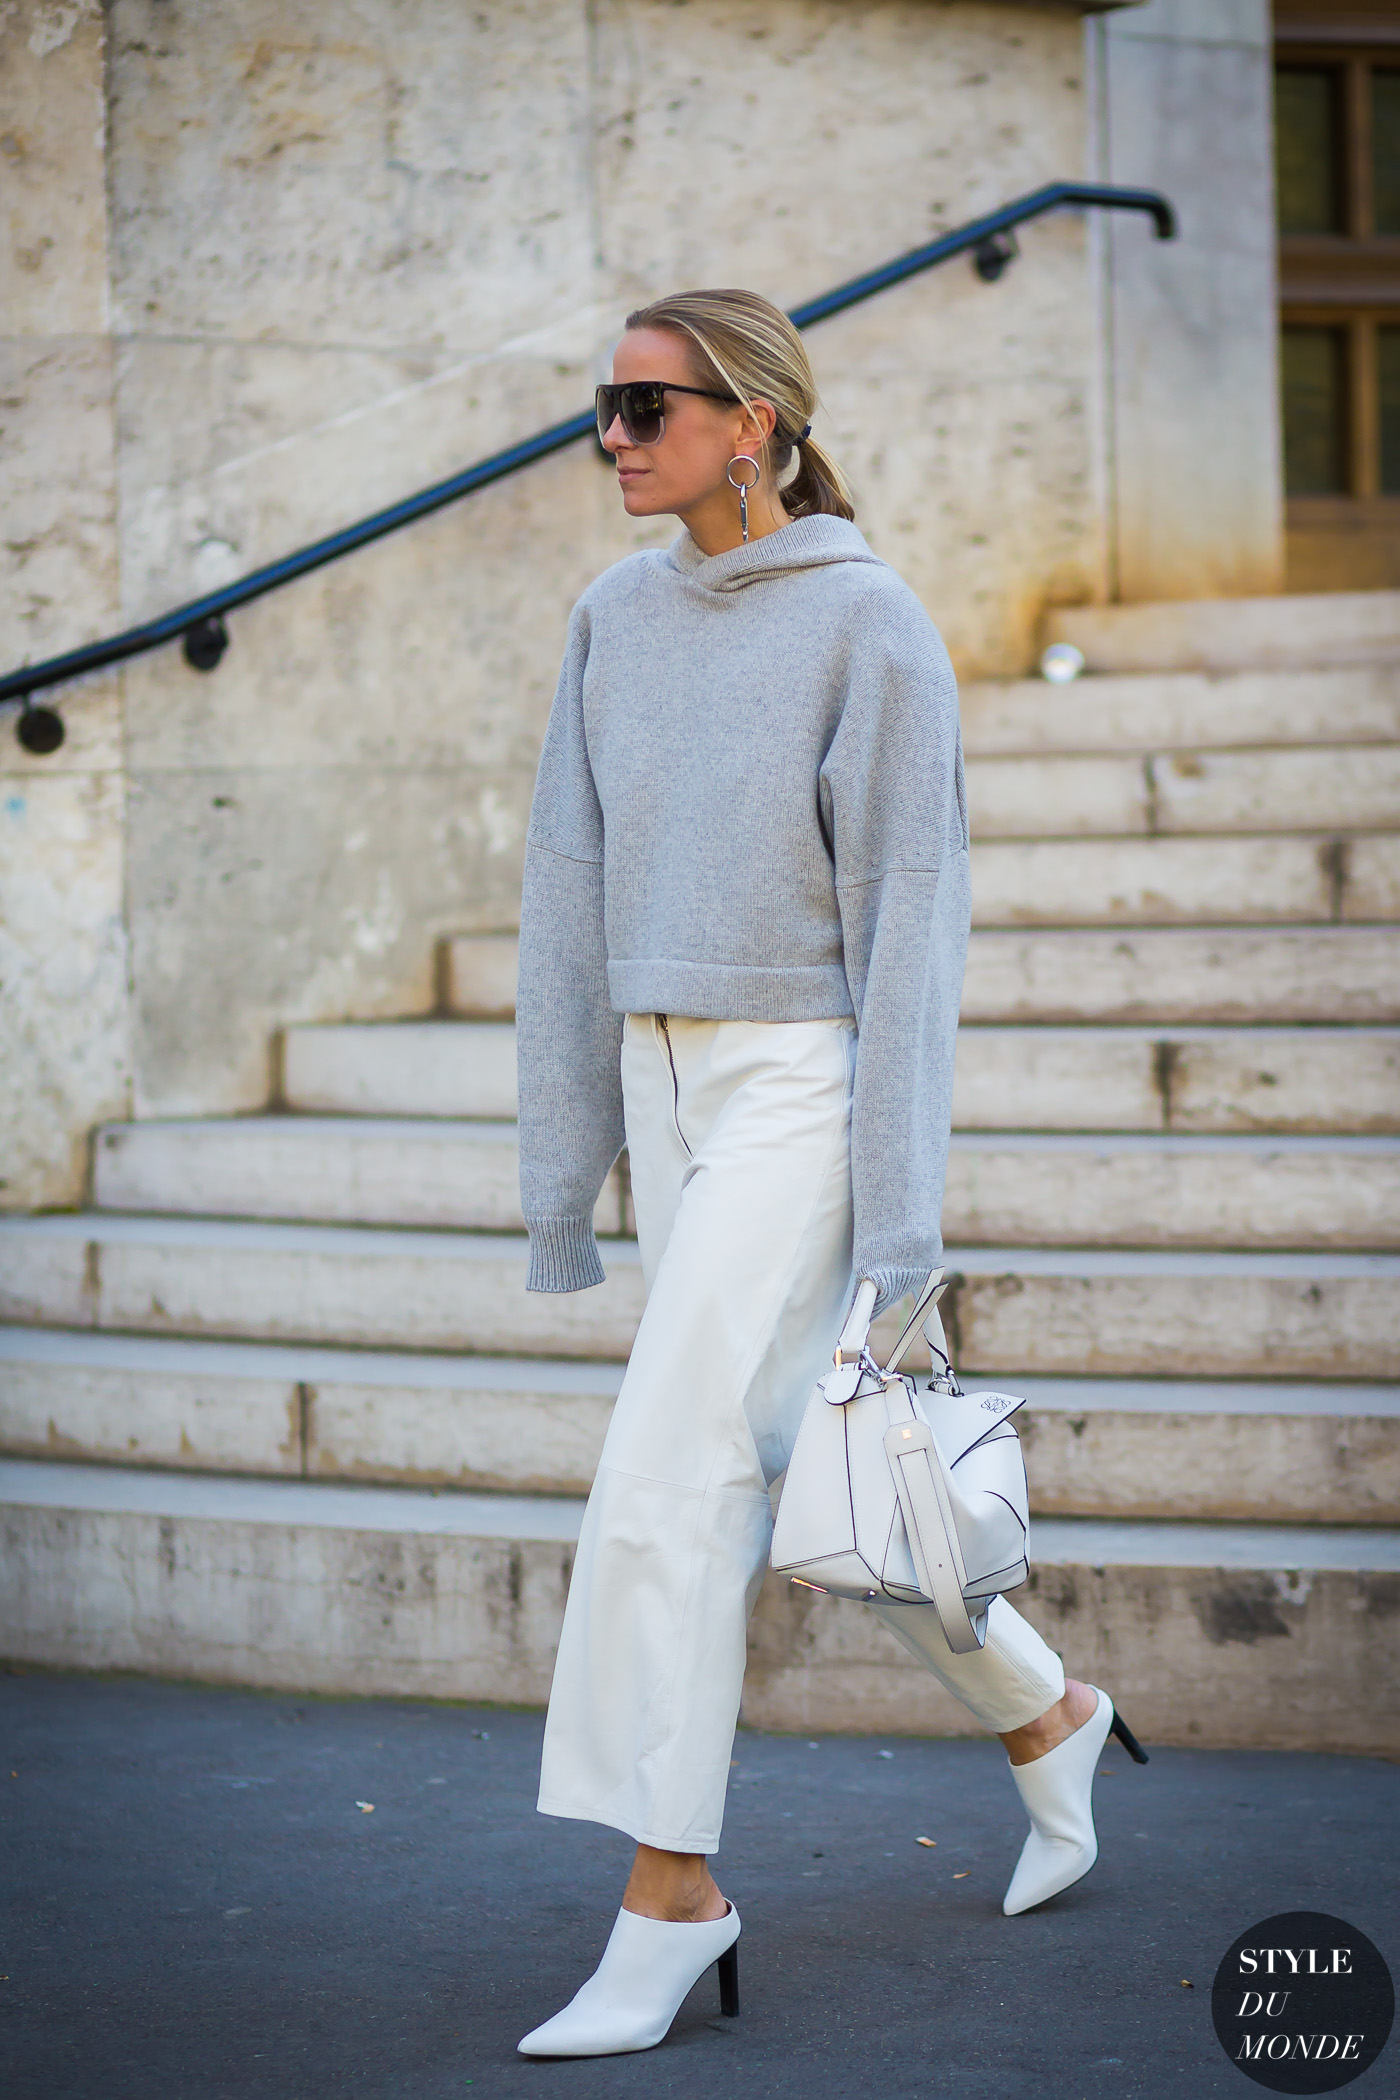 celine-aagaard-by-styledumonde-street-style-fashion-photography